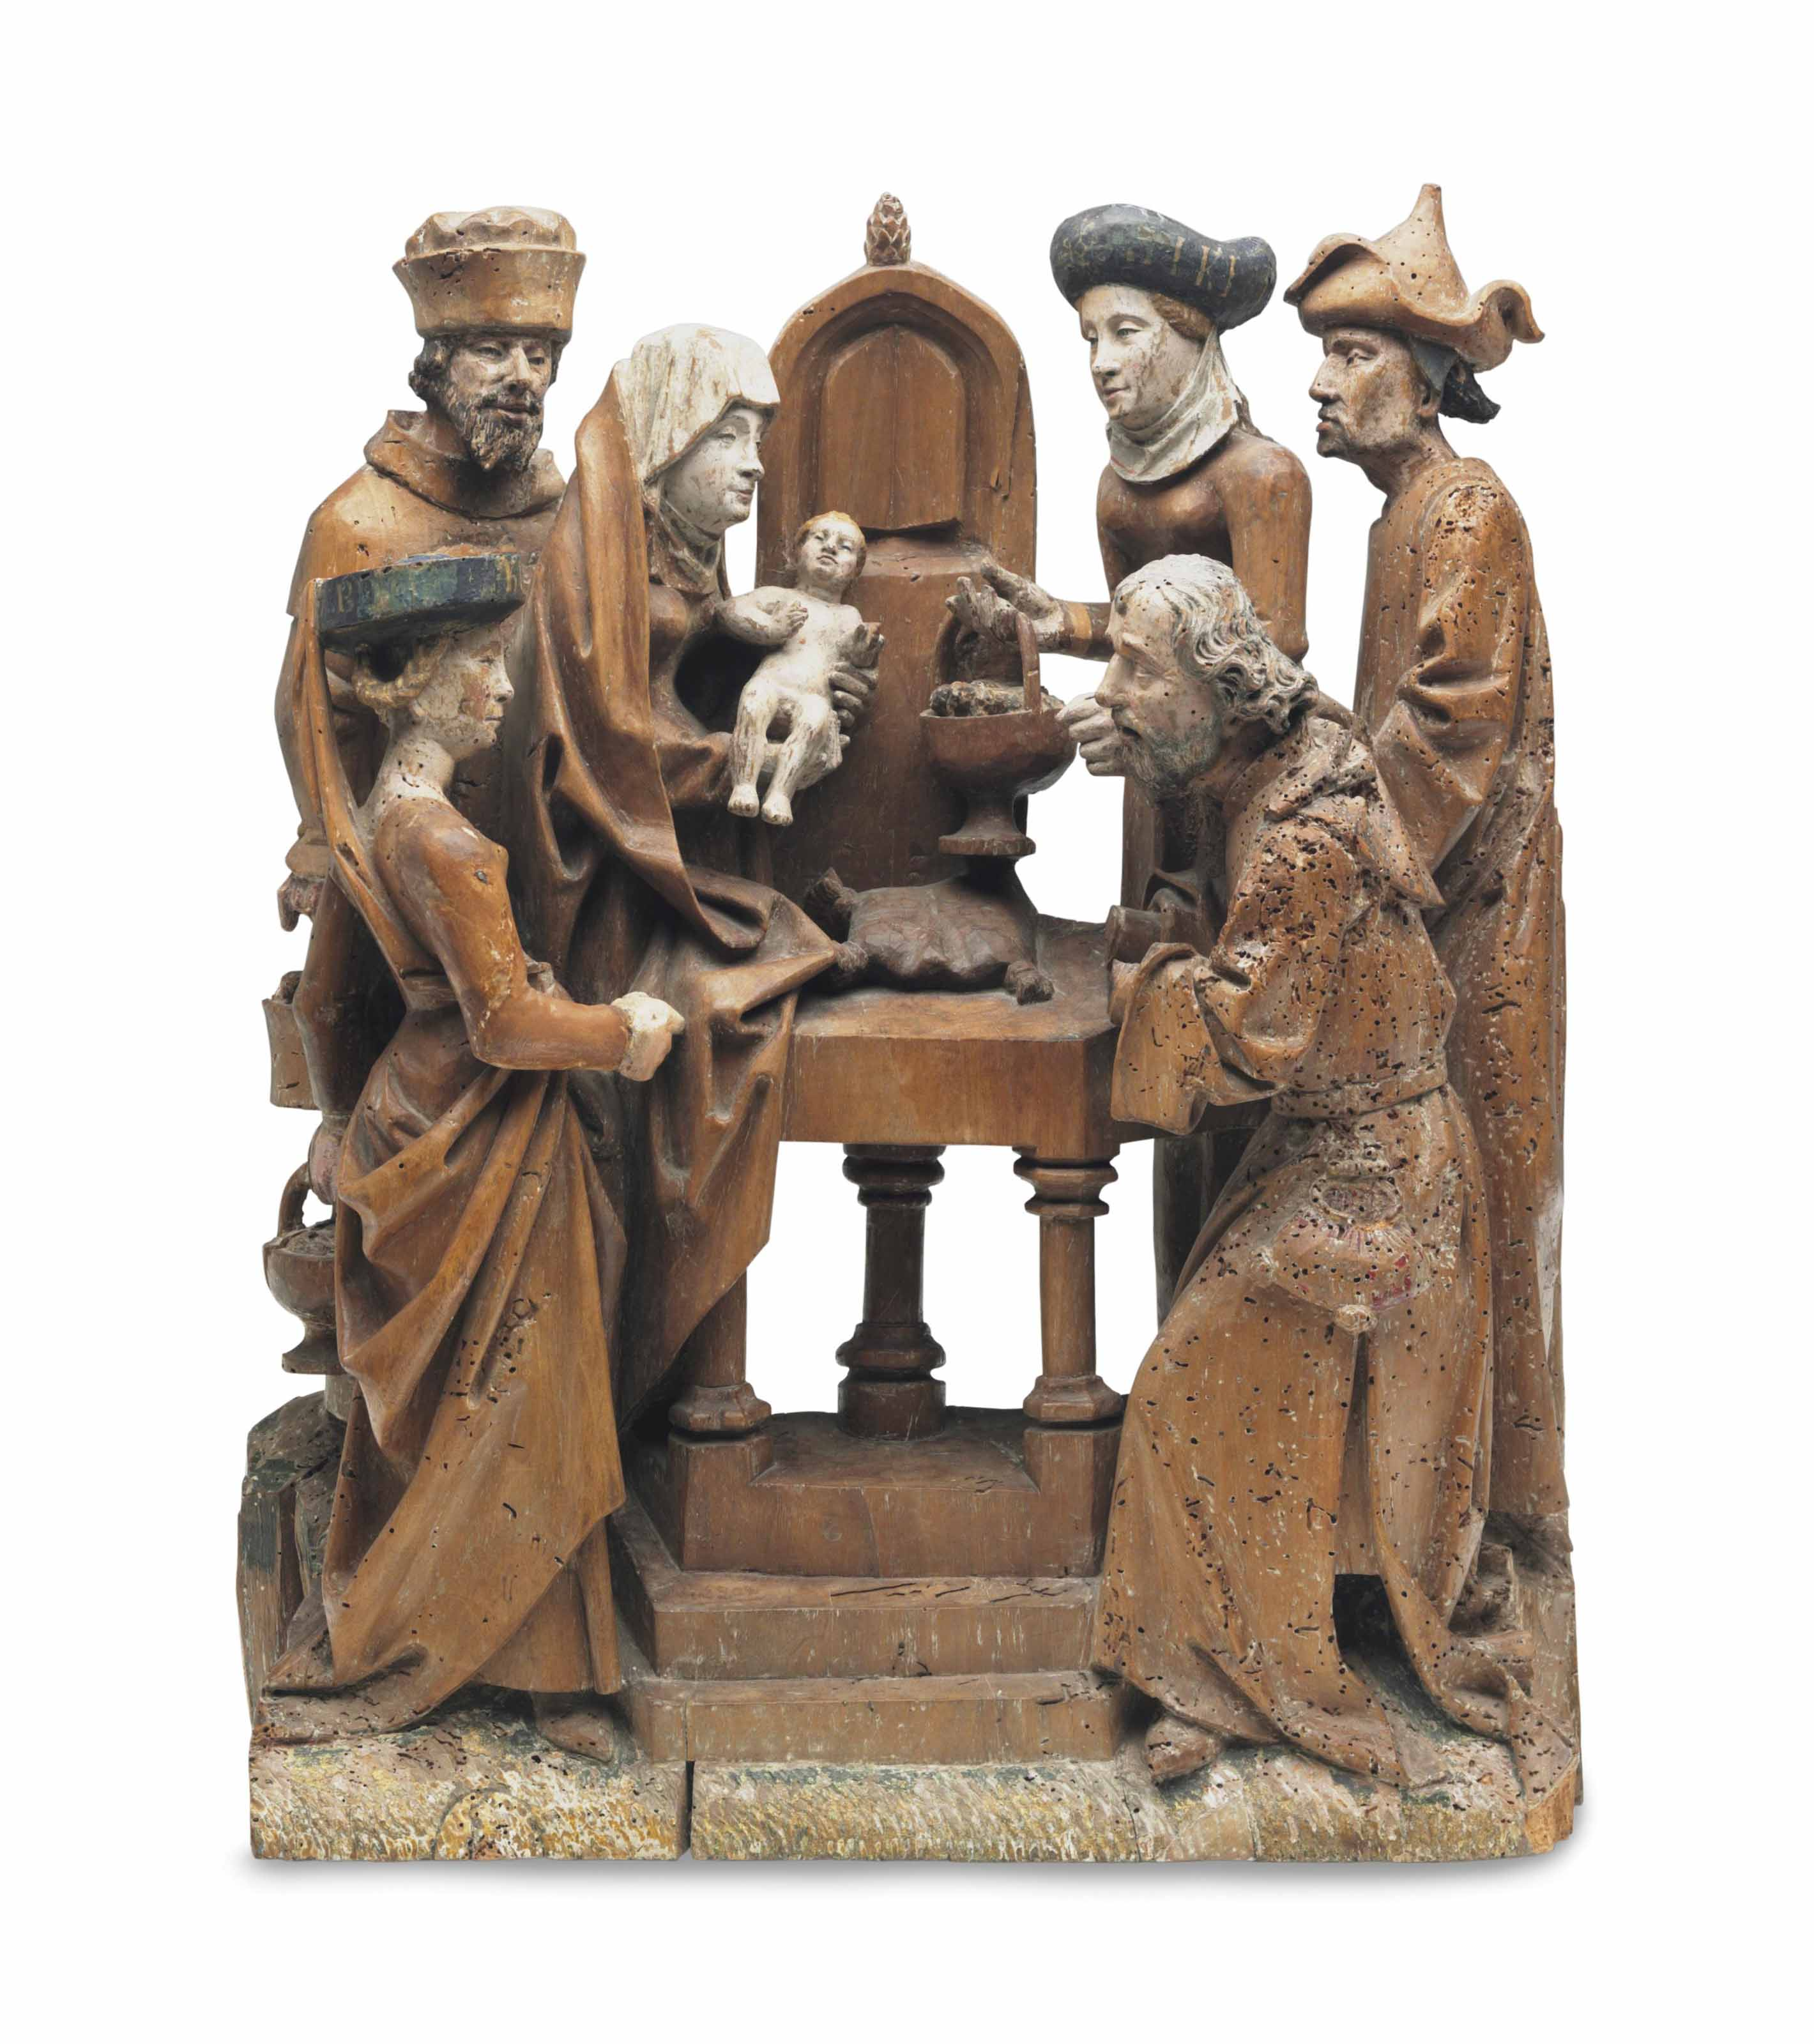 A FLEMISH CARVED WALNUT RELIEF